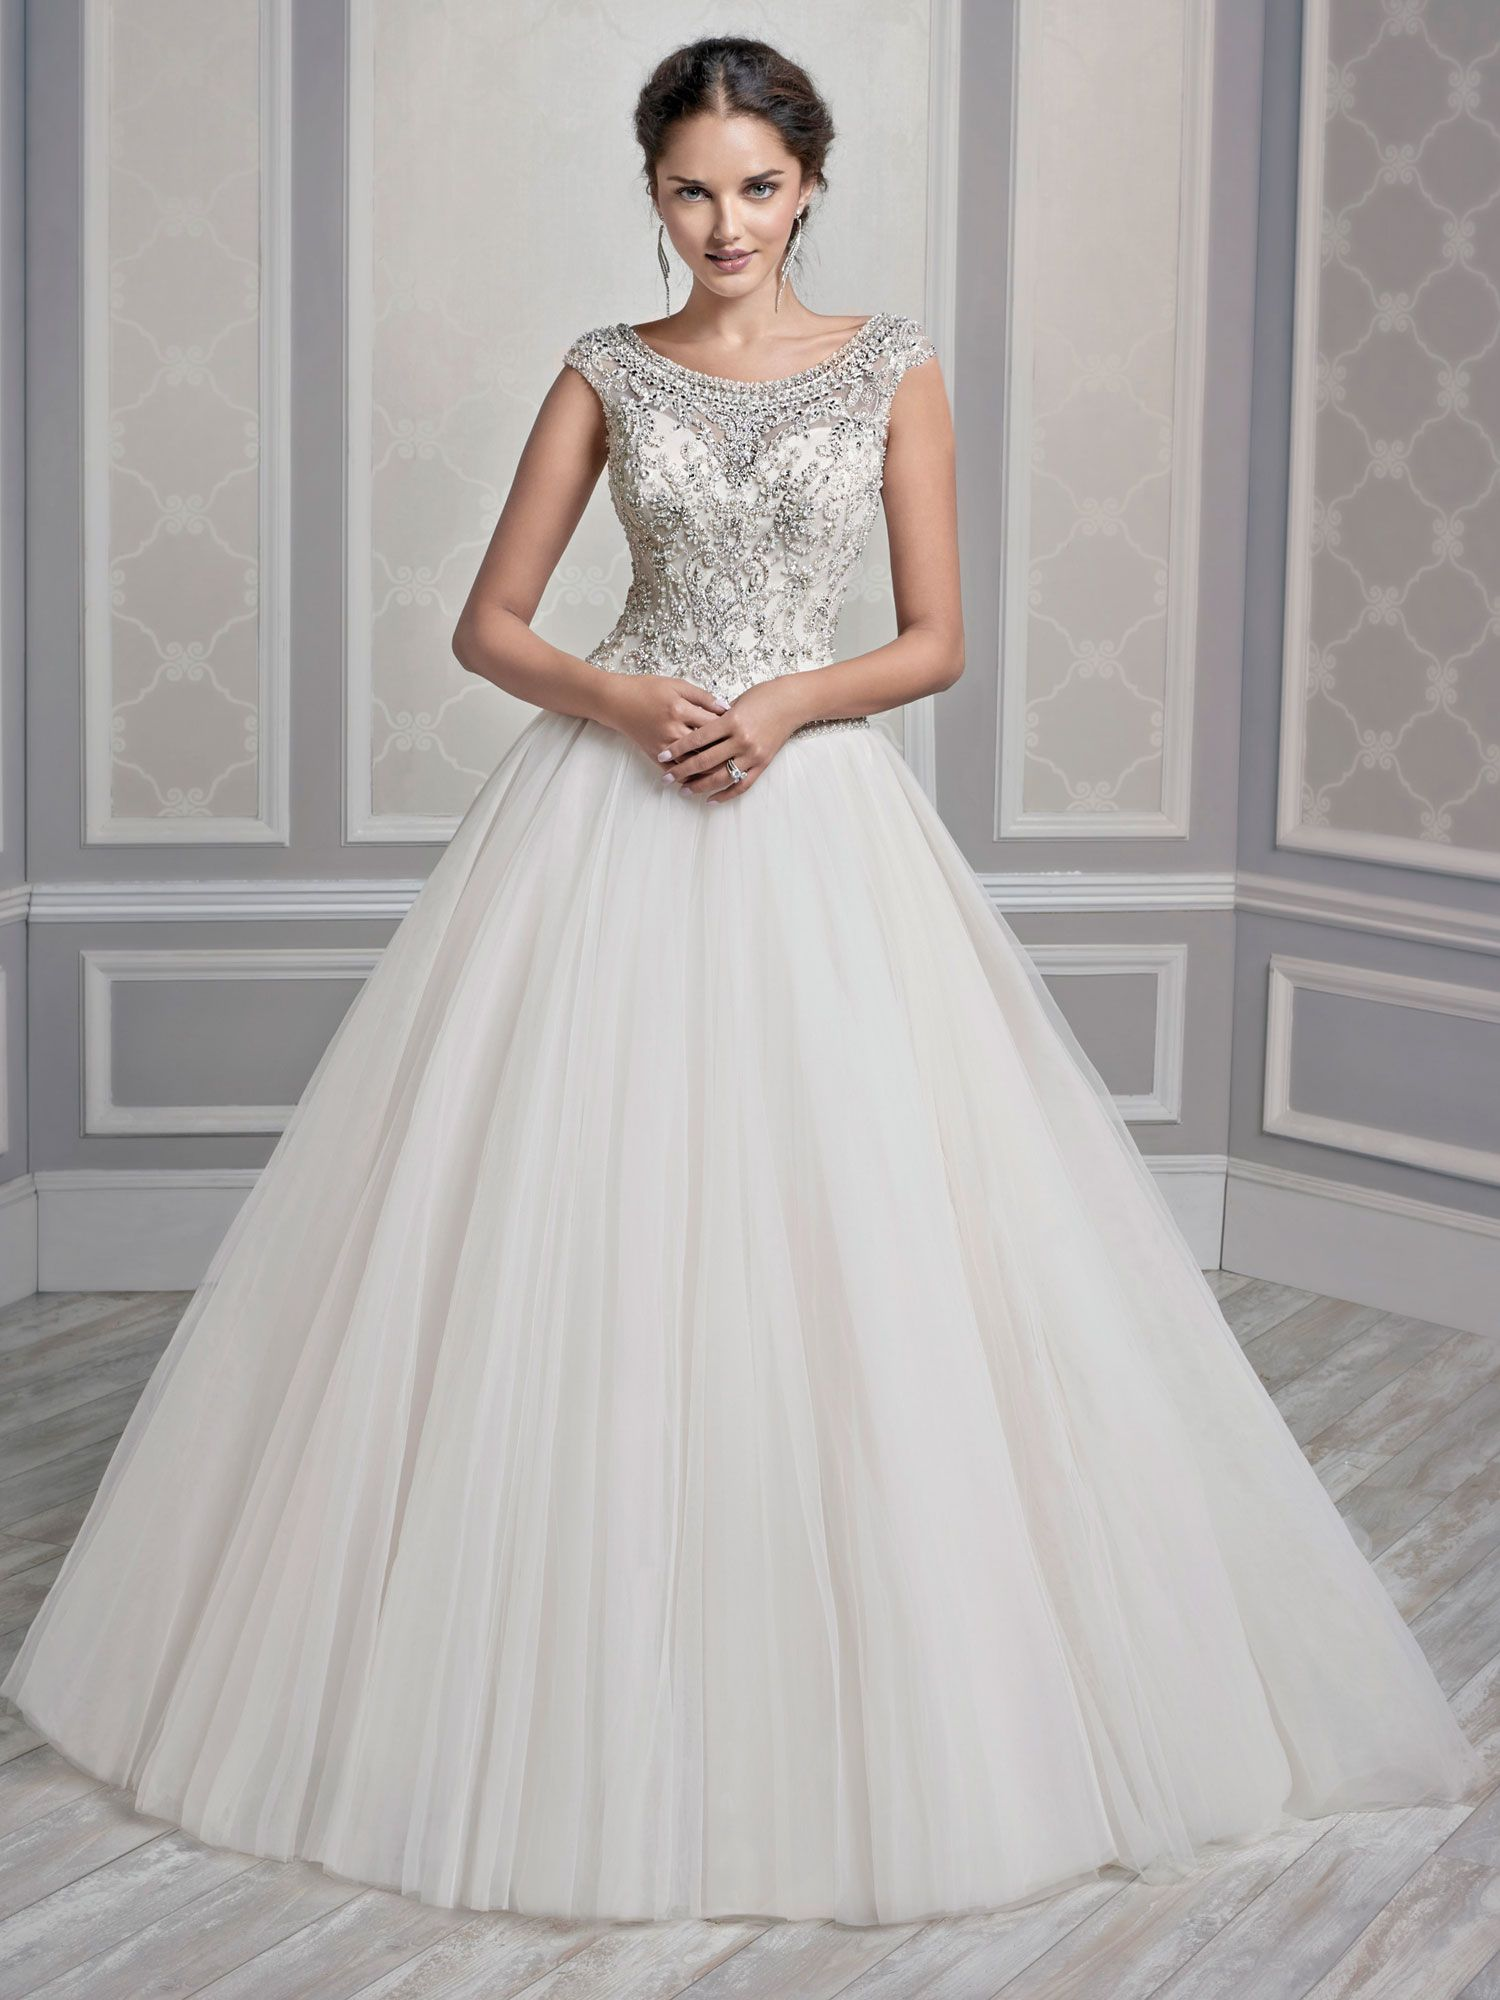 Style * 15942 * » Bridal Gowns, Wedding Dresses »